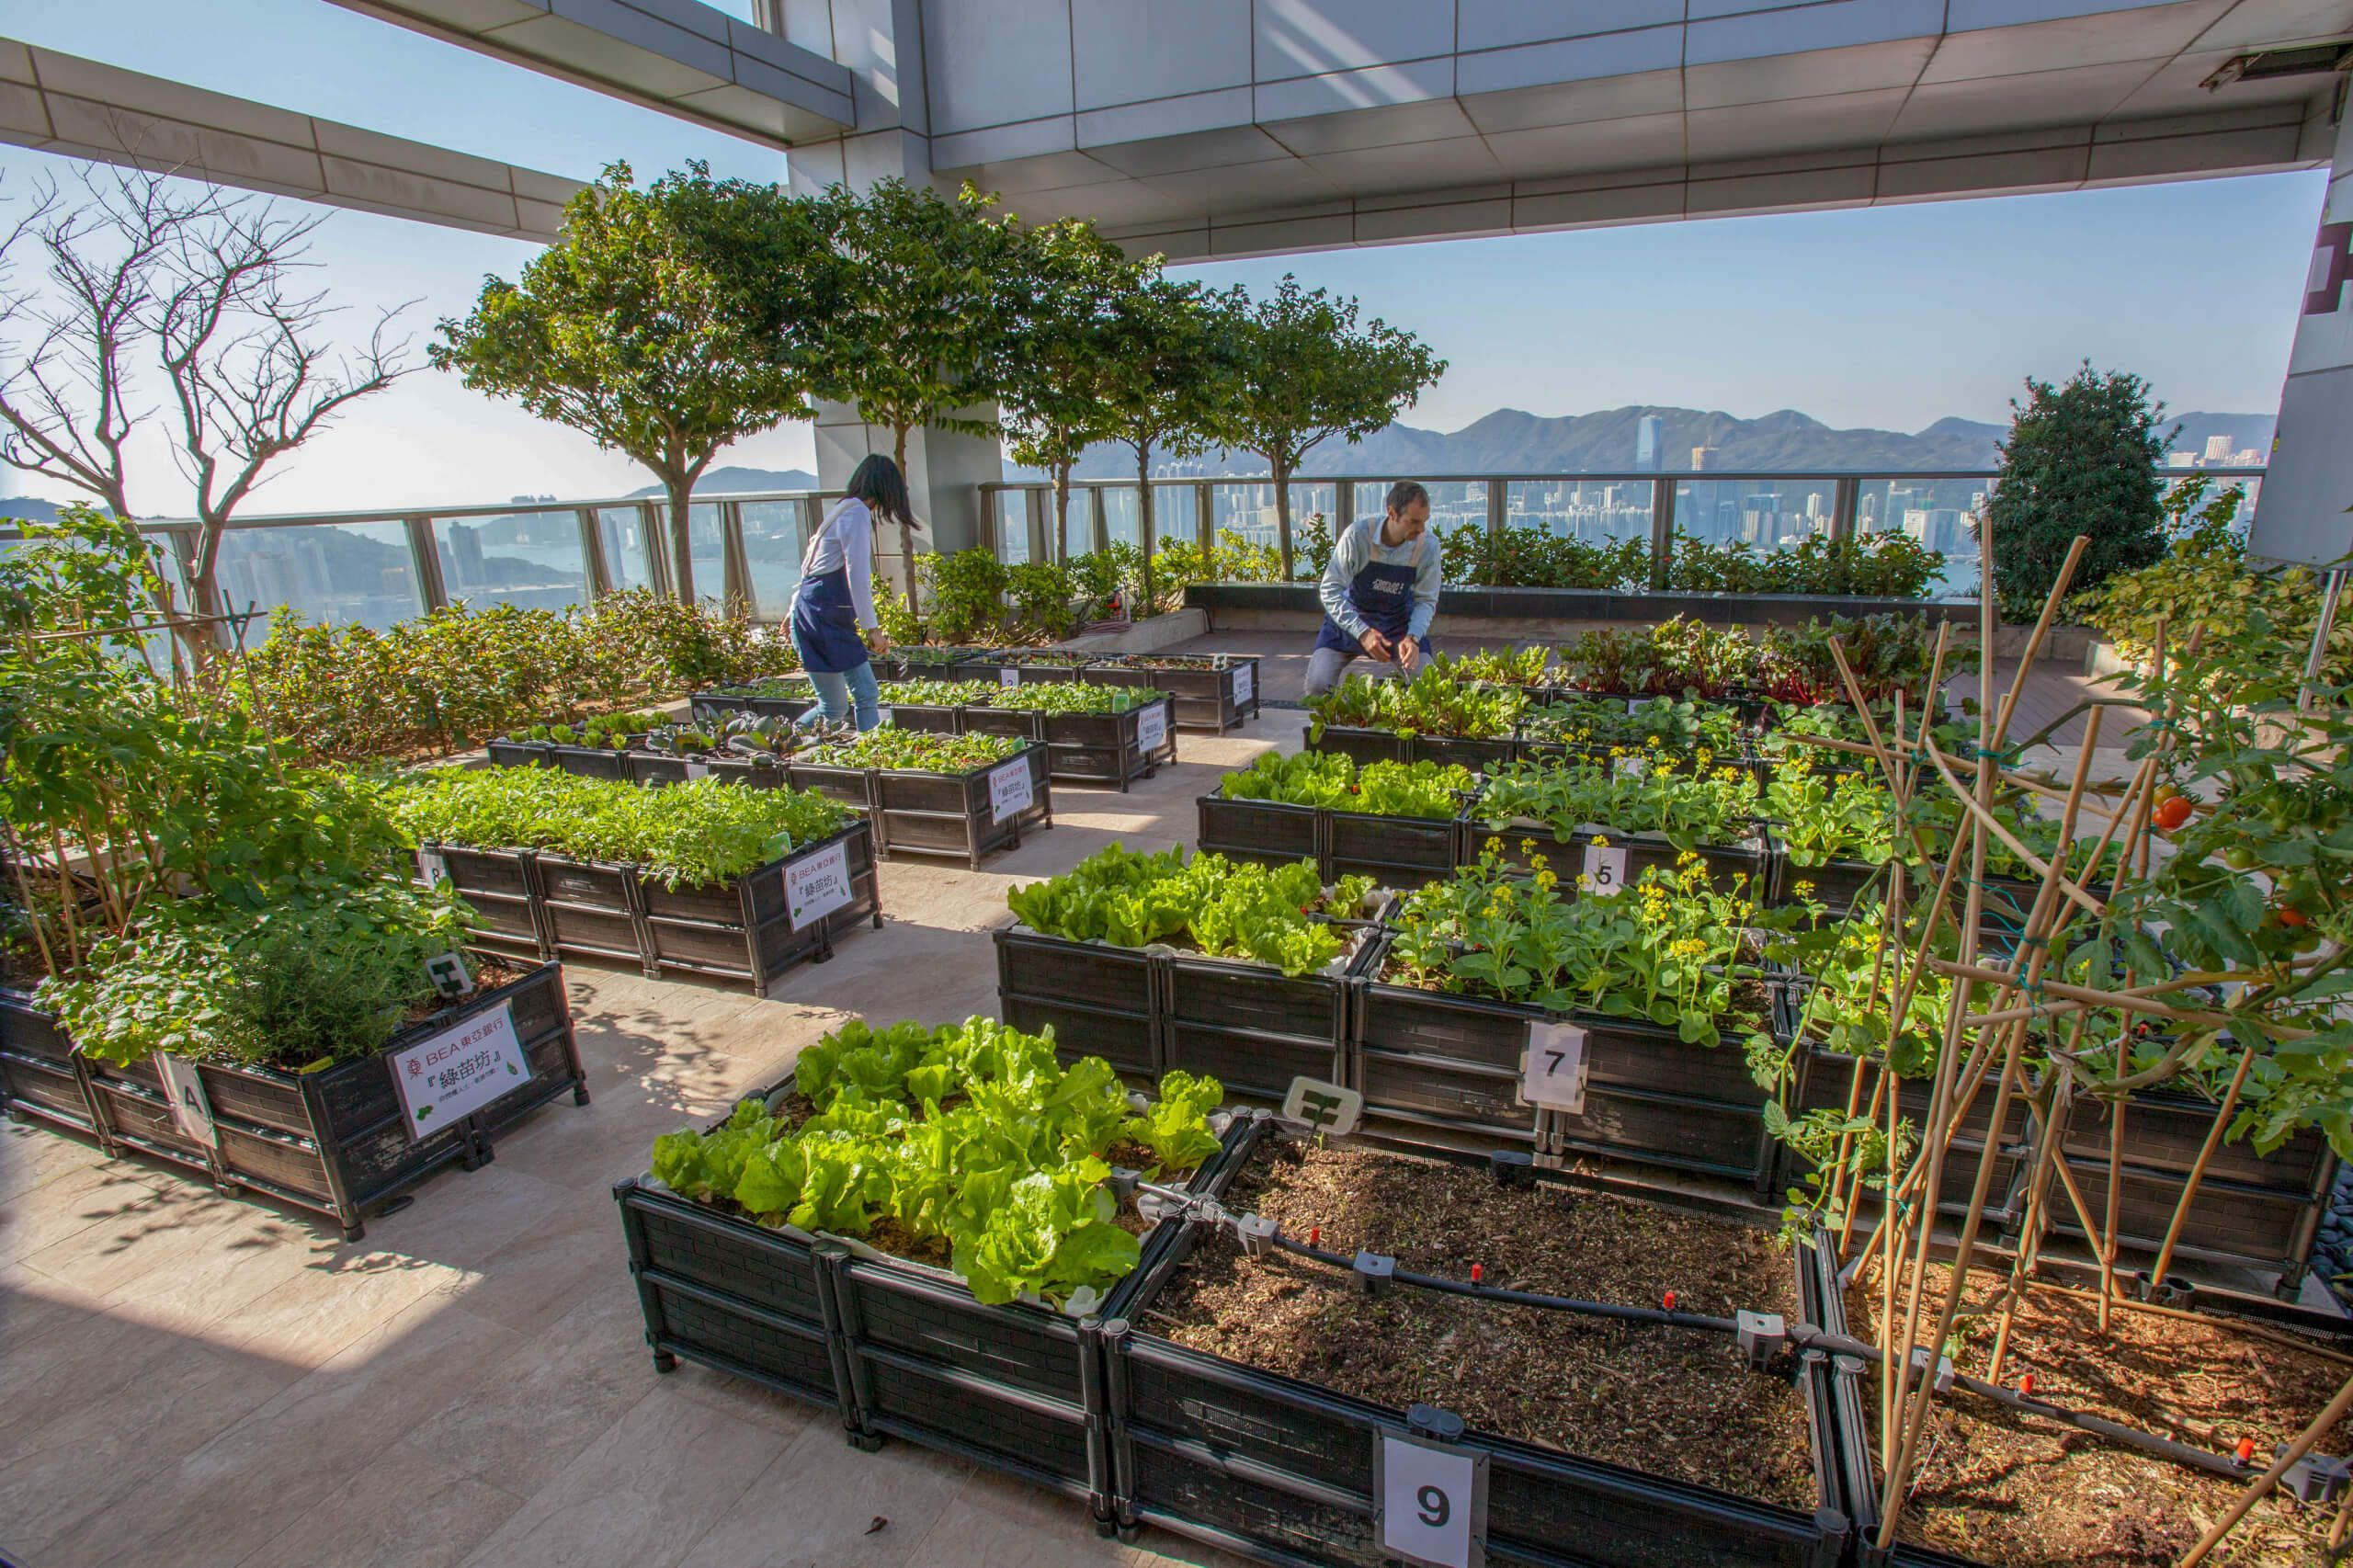 Urban rooftop farming in Hong Kong with city skyline